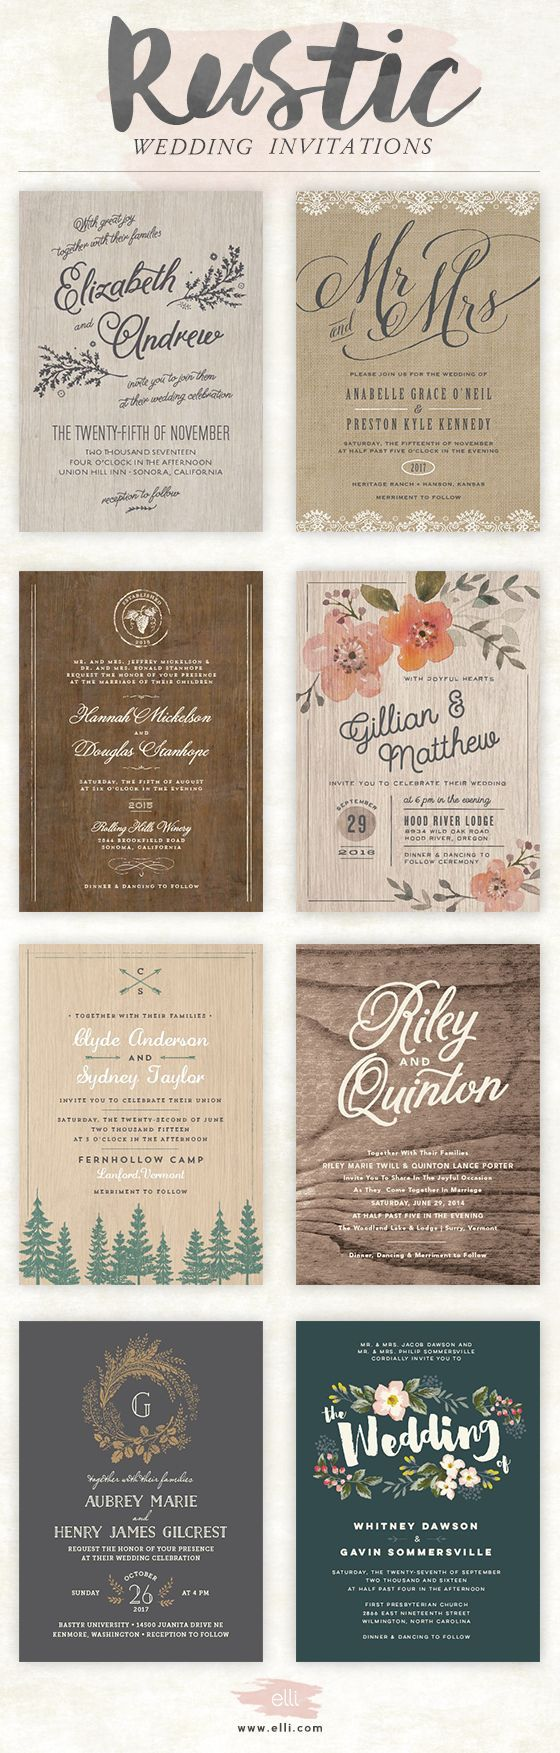 sample of wedding invitations templates%0A Rustic wedding invitations   bellacollina com   Bella Collina Weddings